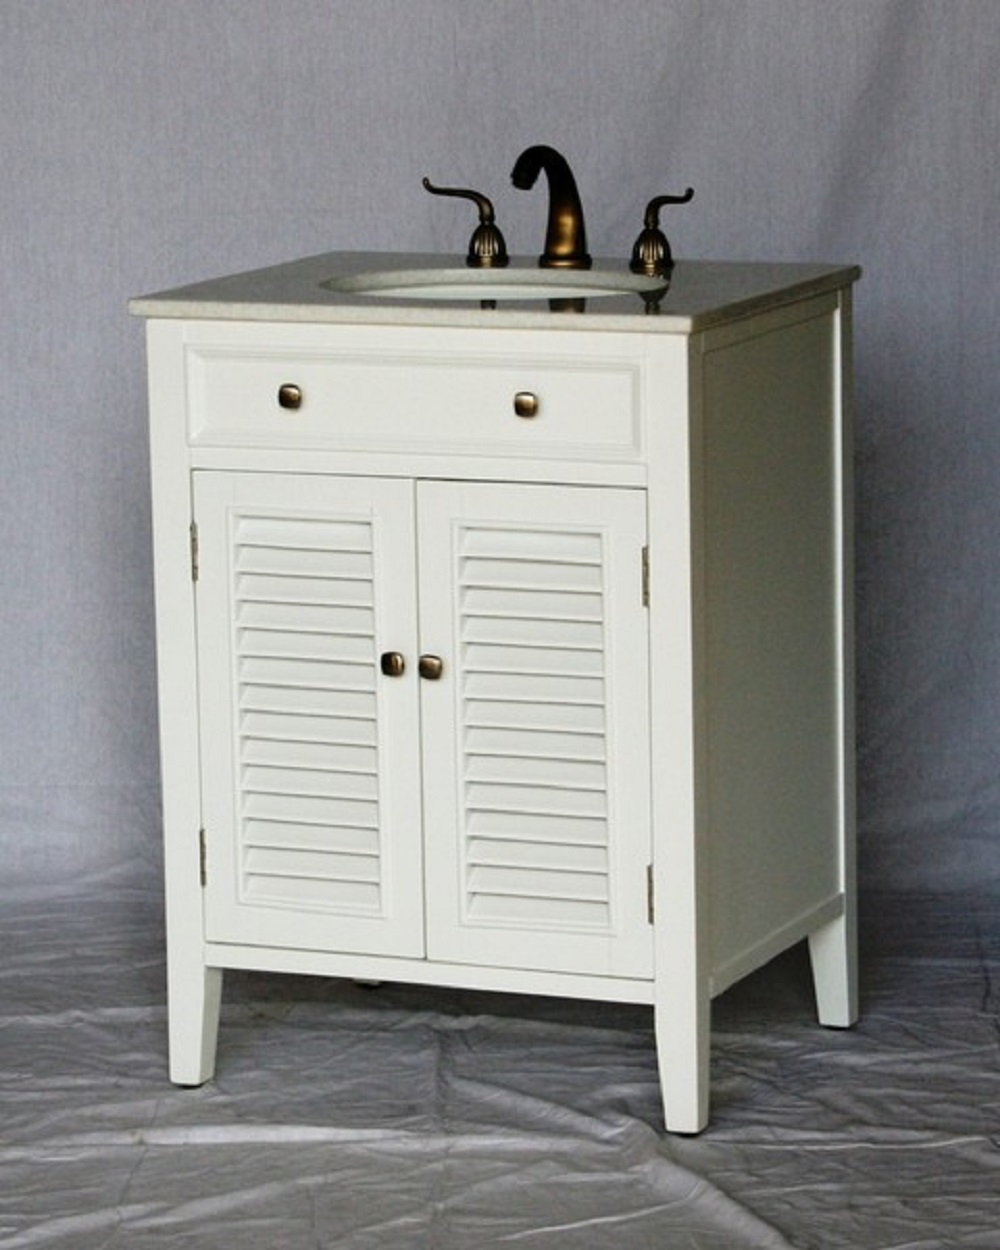 Nautical Style Bathroom Vanities: 26 Inch Bathroom Vanity Cottage Coastal Beach Style White